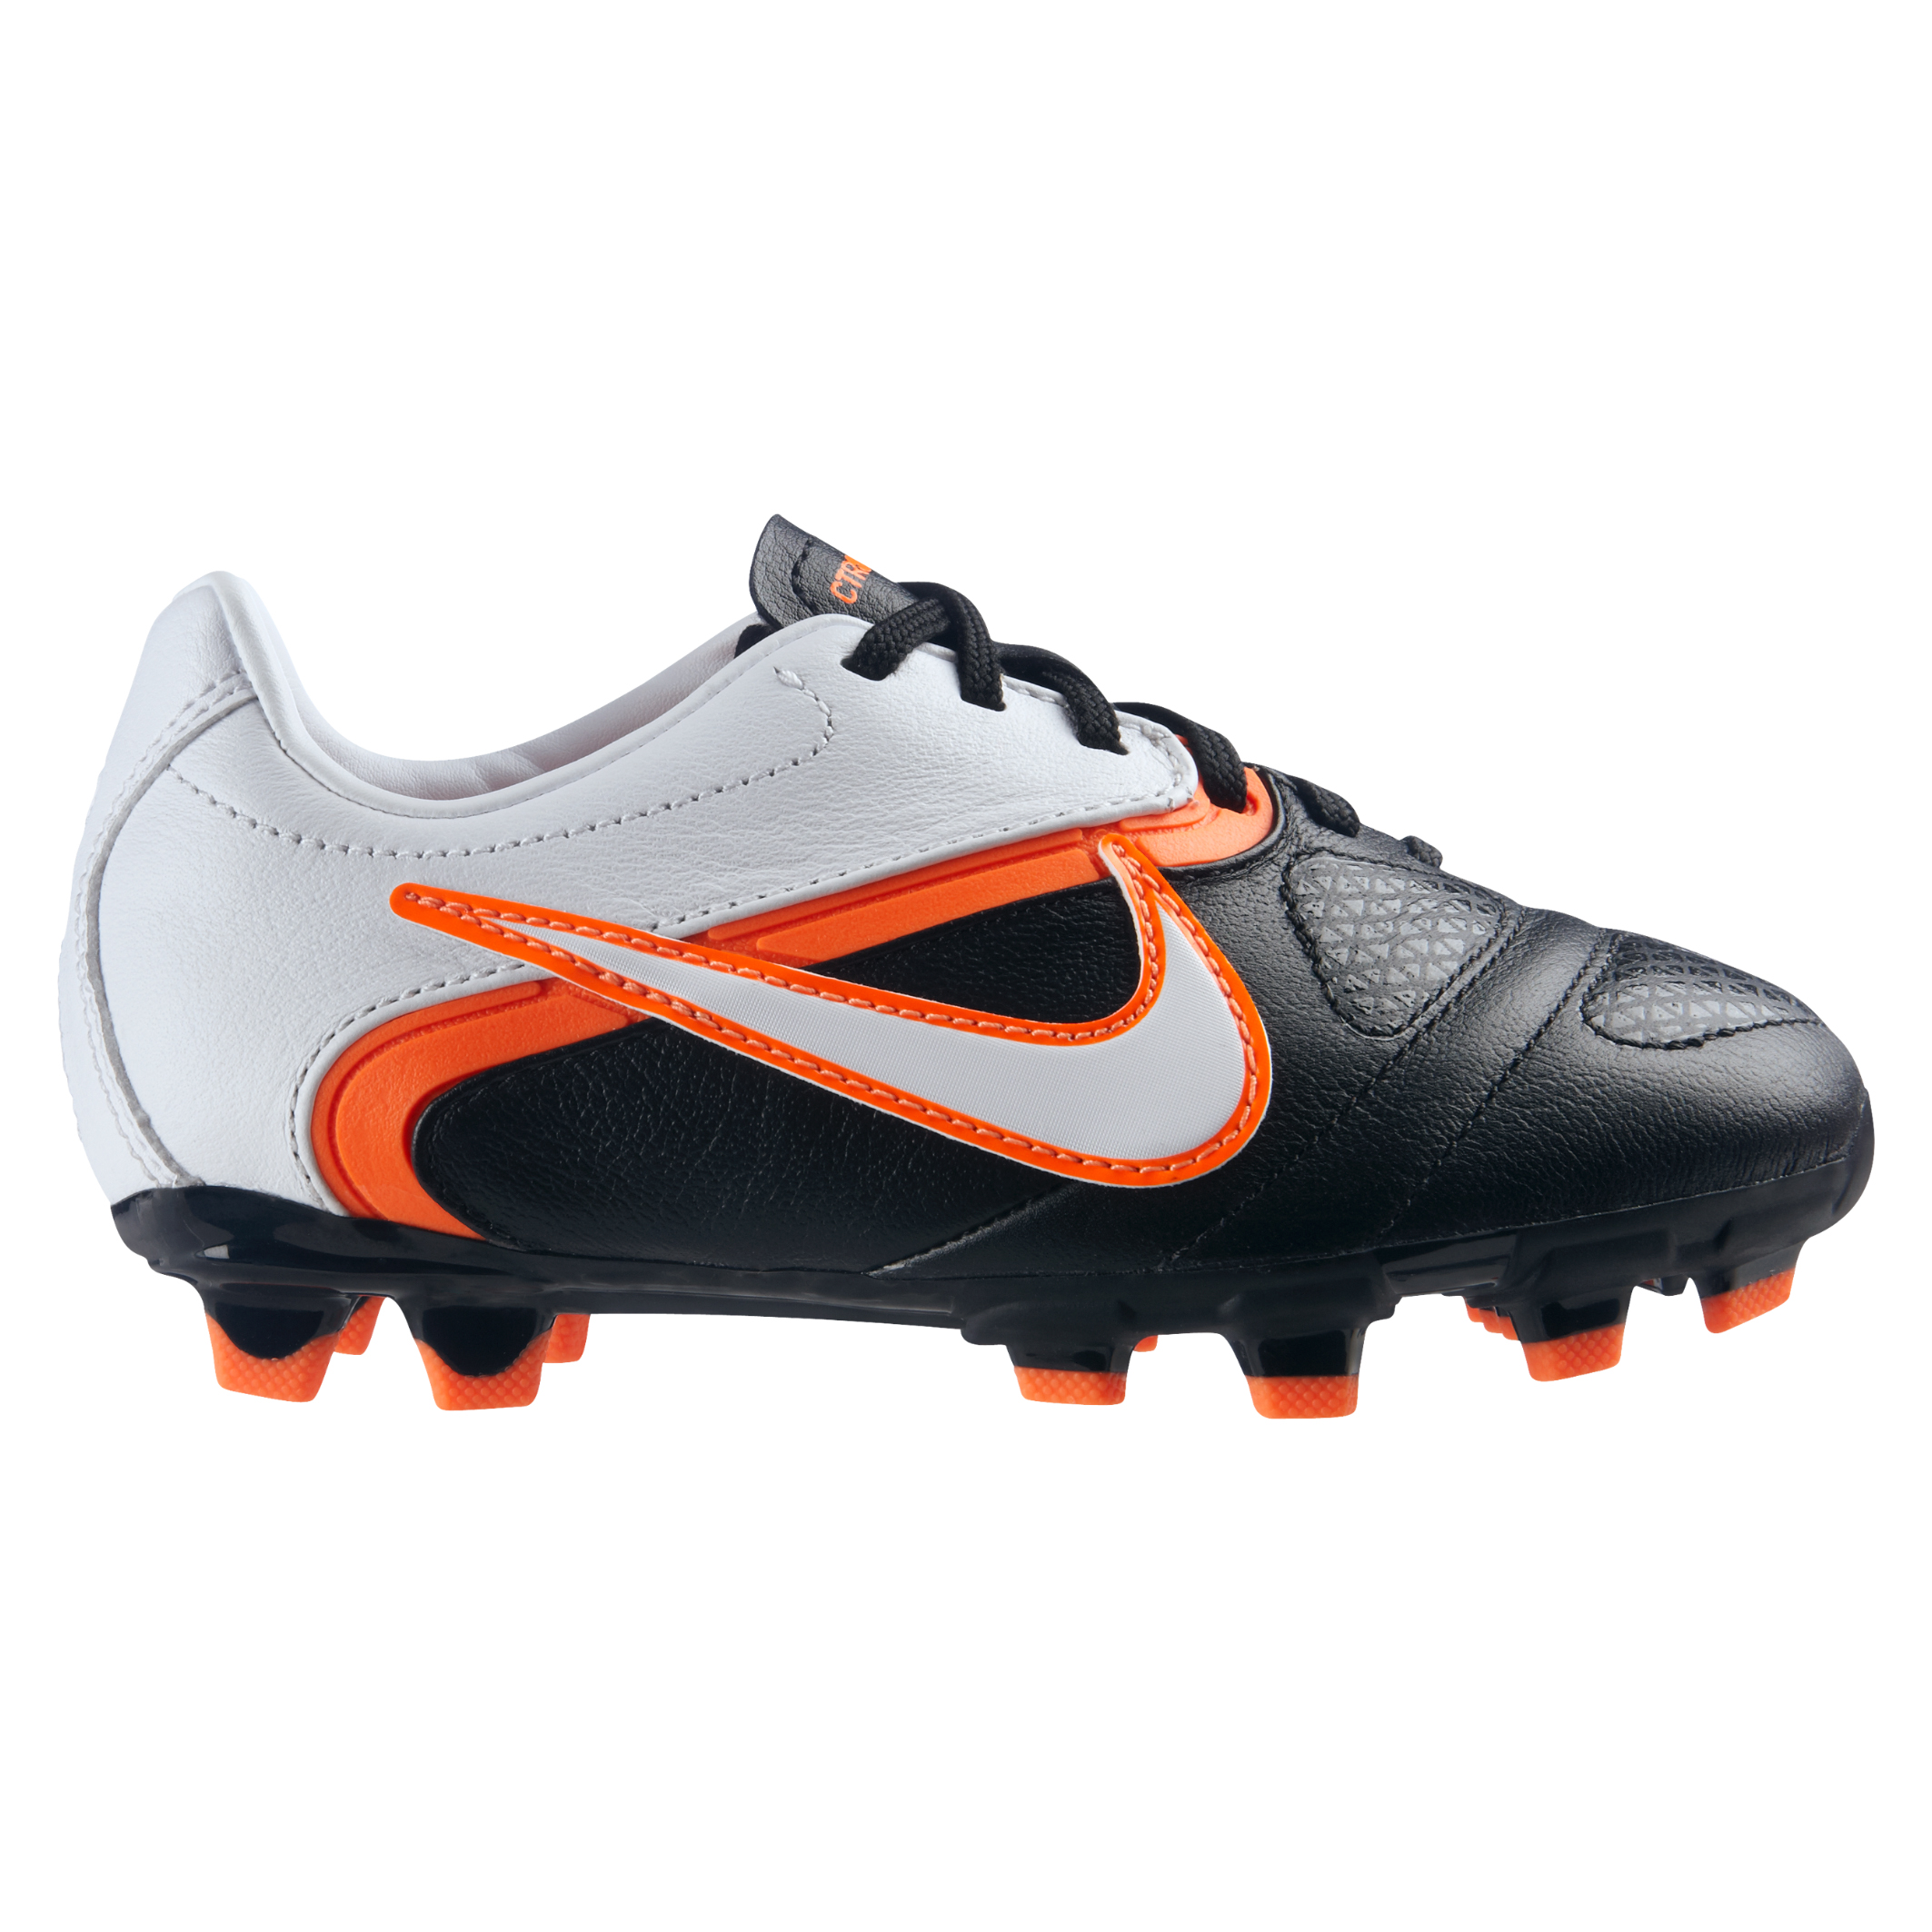 Nike CTR360 Libretto II Soft Ground Football Boots - Black/White/Total Orange - Kids